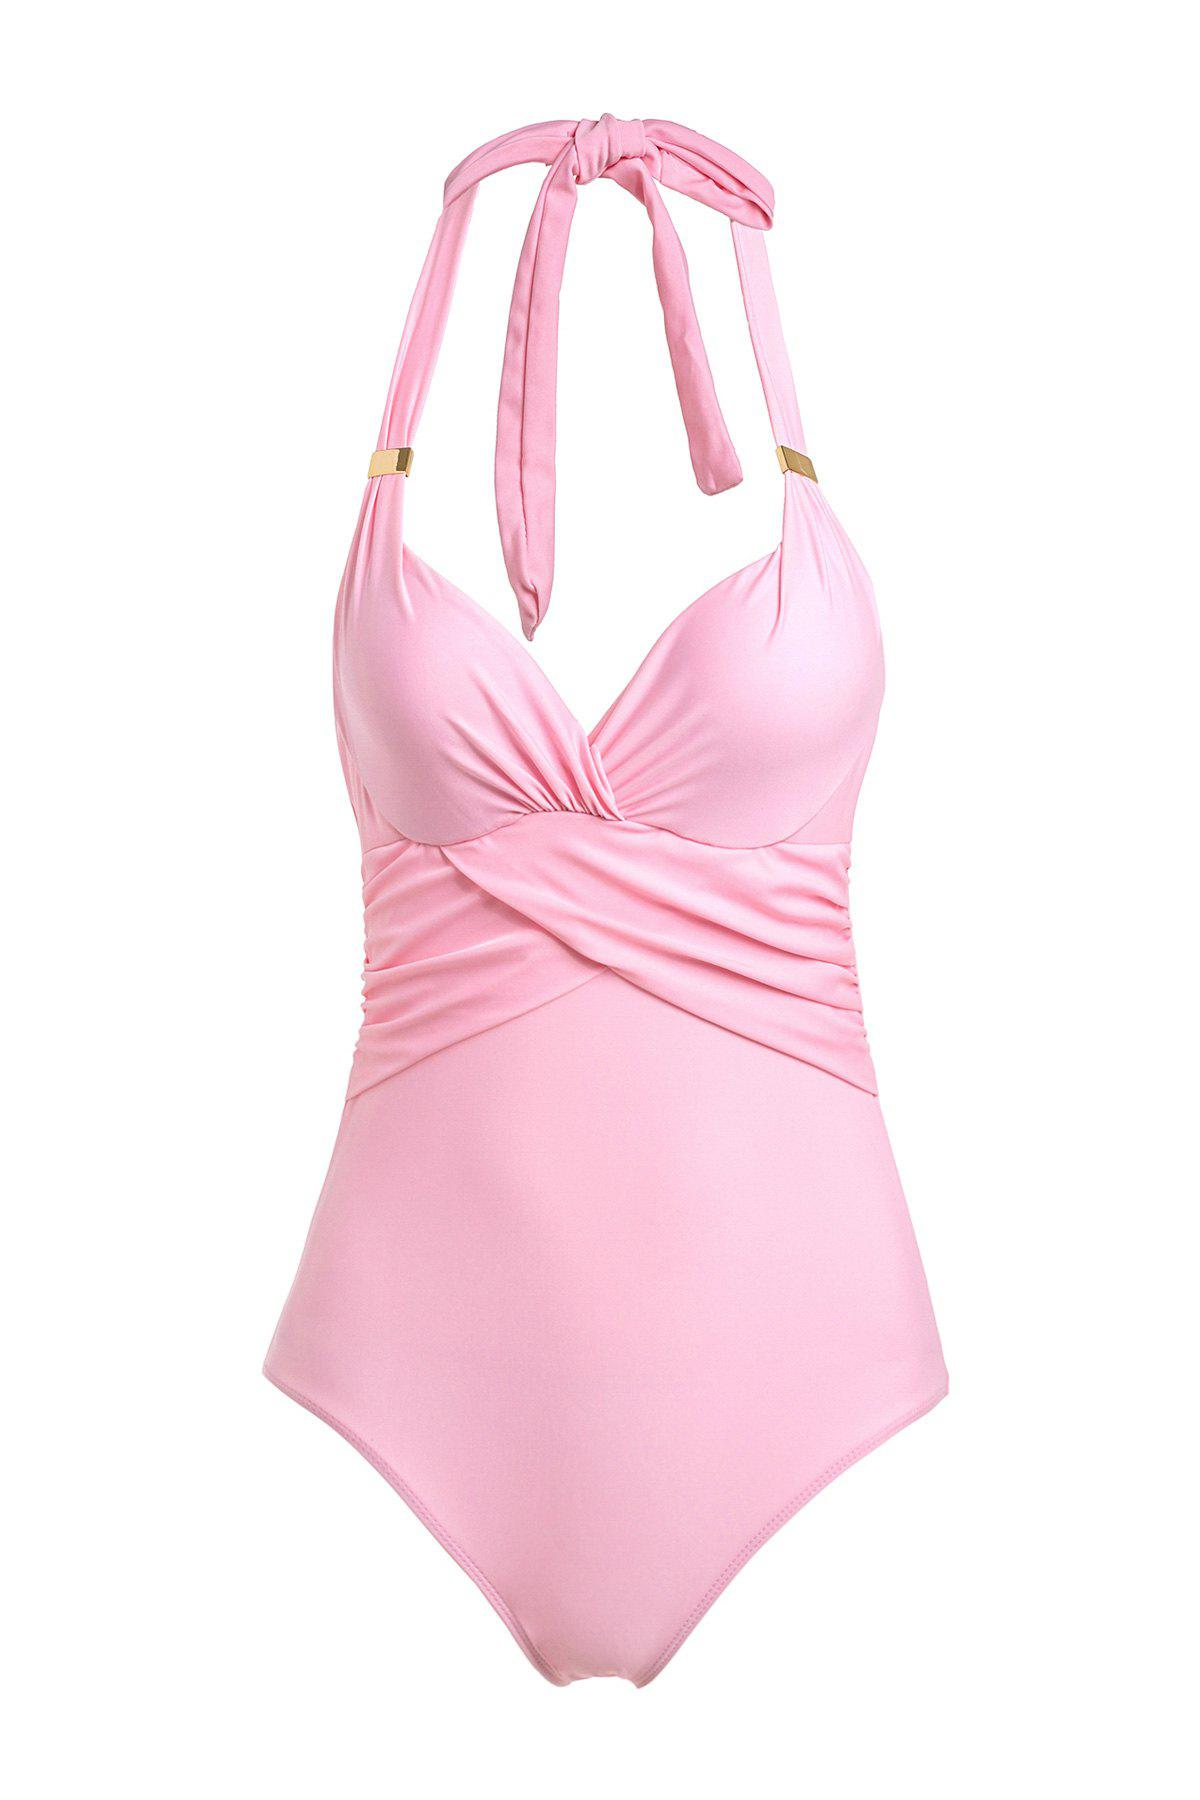 Fashionable One Piece Halter Solid Color Swimwear For Women - PINK 2XL